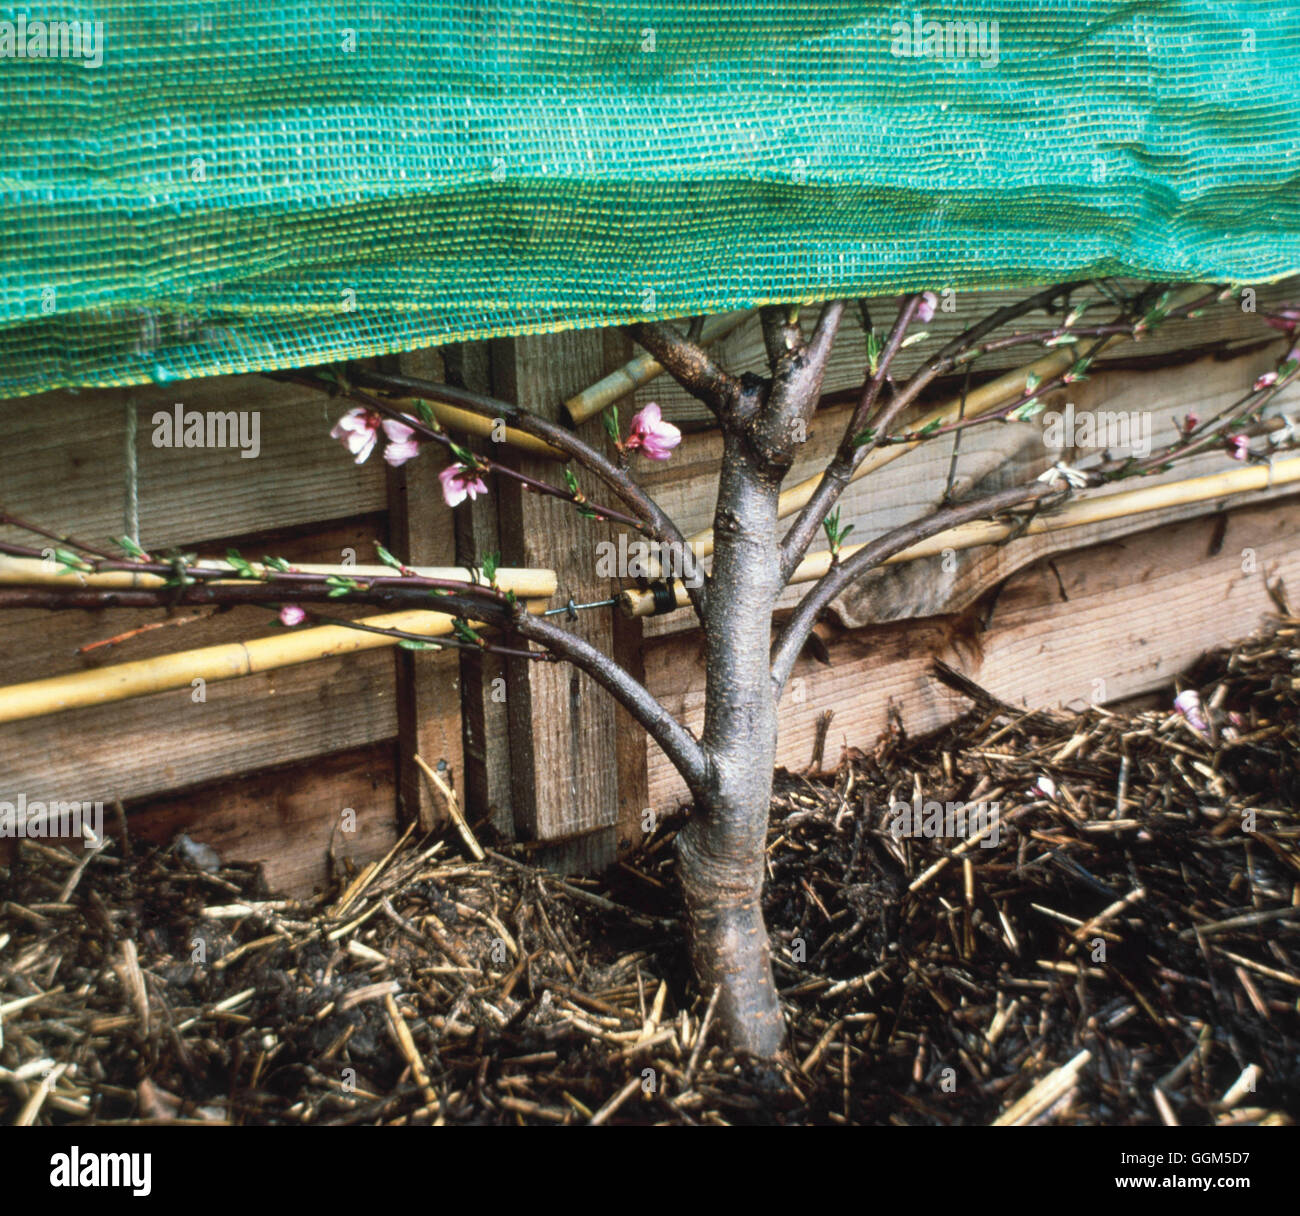 Mulch - of manure around fruit tree - (also protective netting covering top to prevent frost damage)   TAS035623 - Stock Image